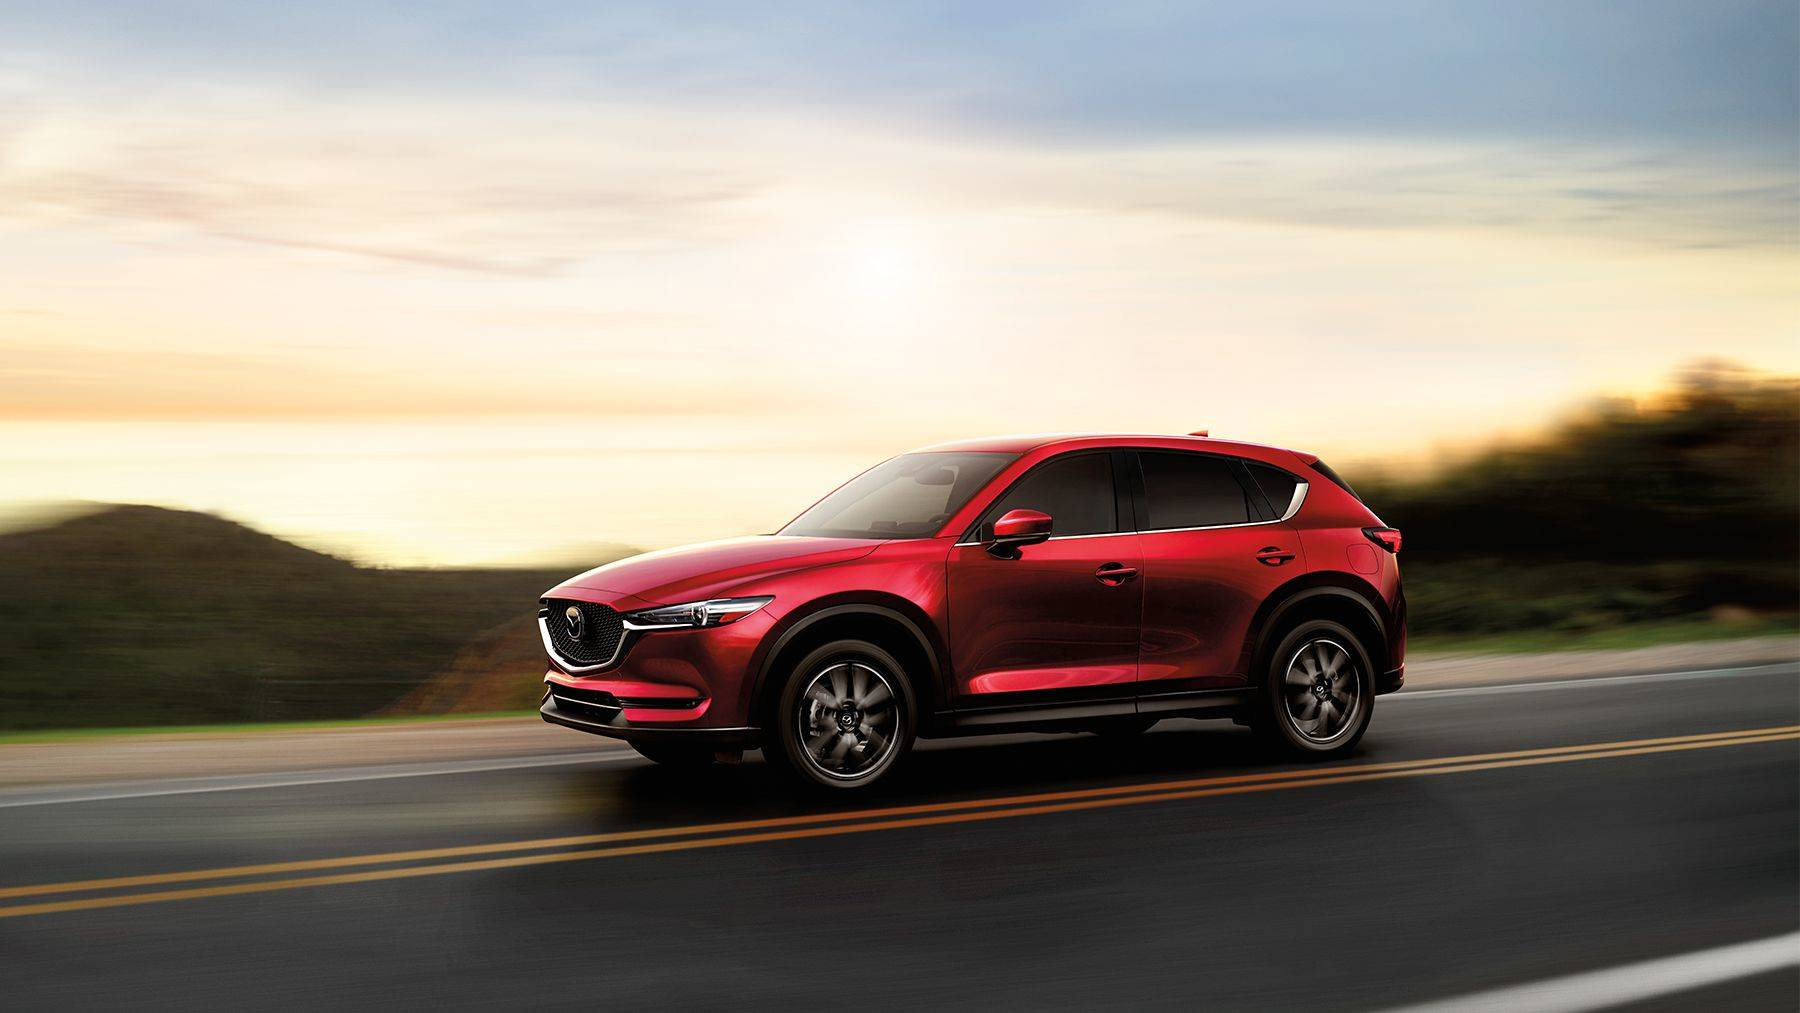 2018 Mazda CX-5 Financing near Frederick, MD